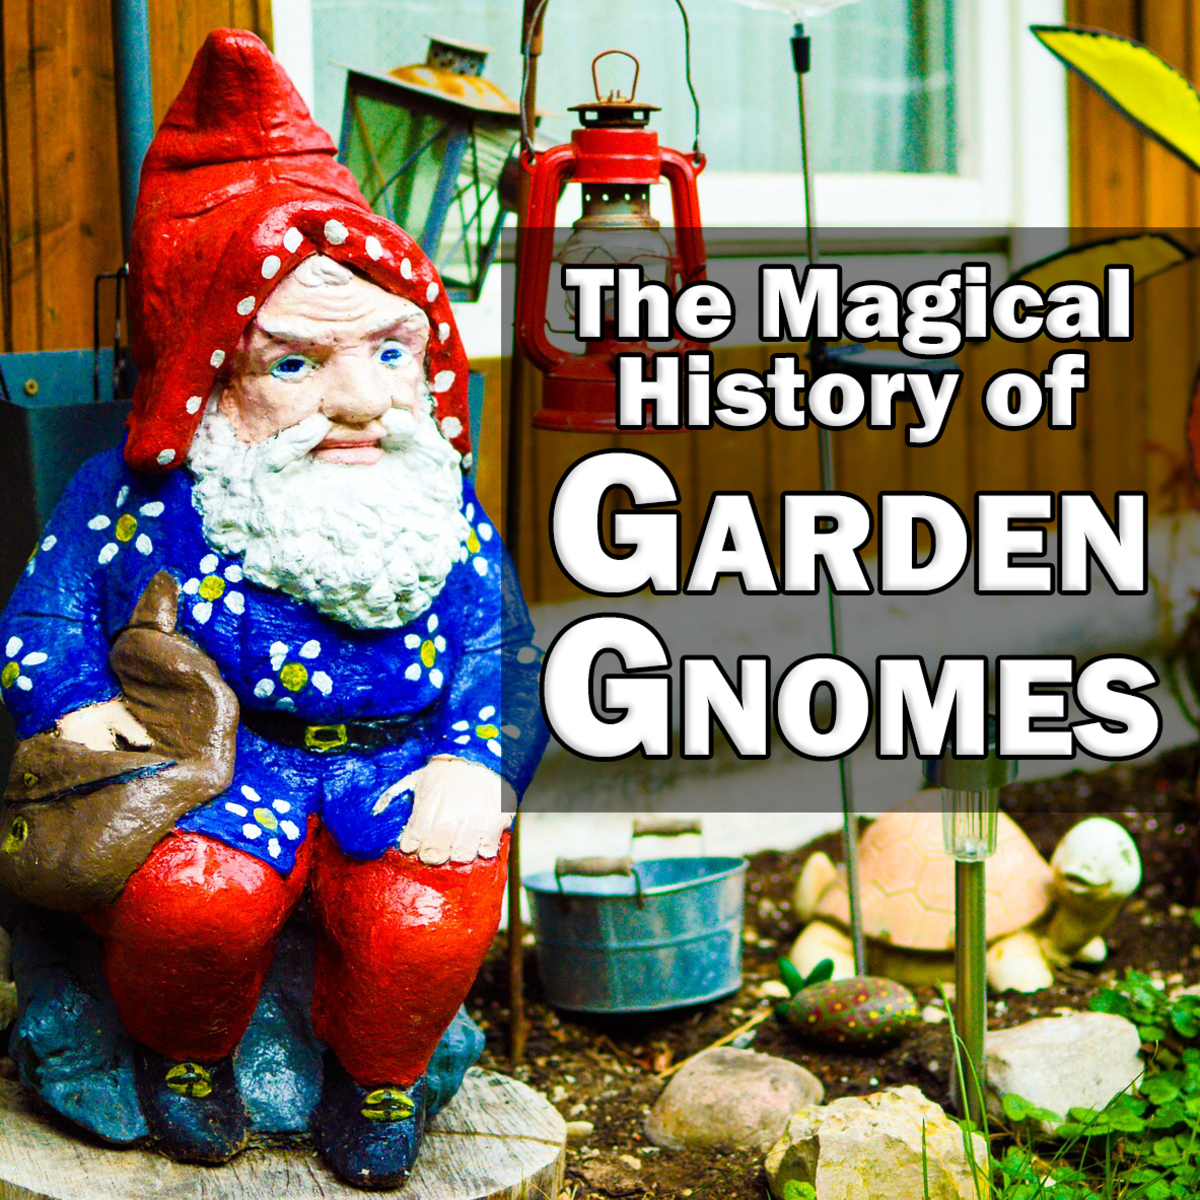 The Magical History of Garden Gnomes